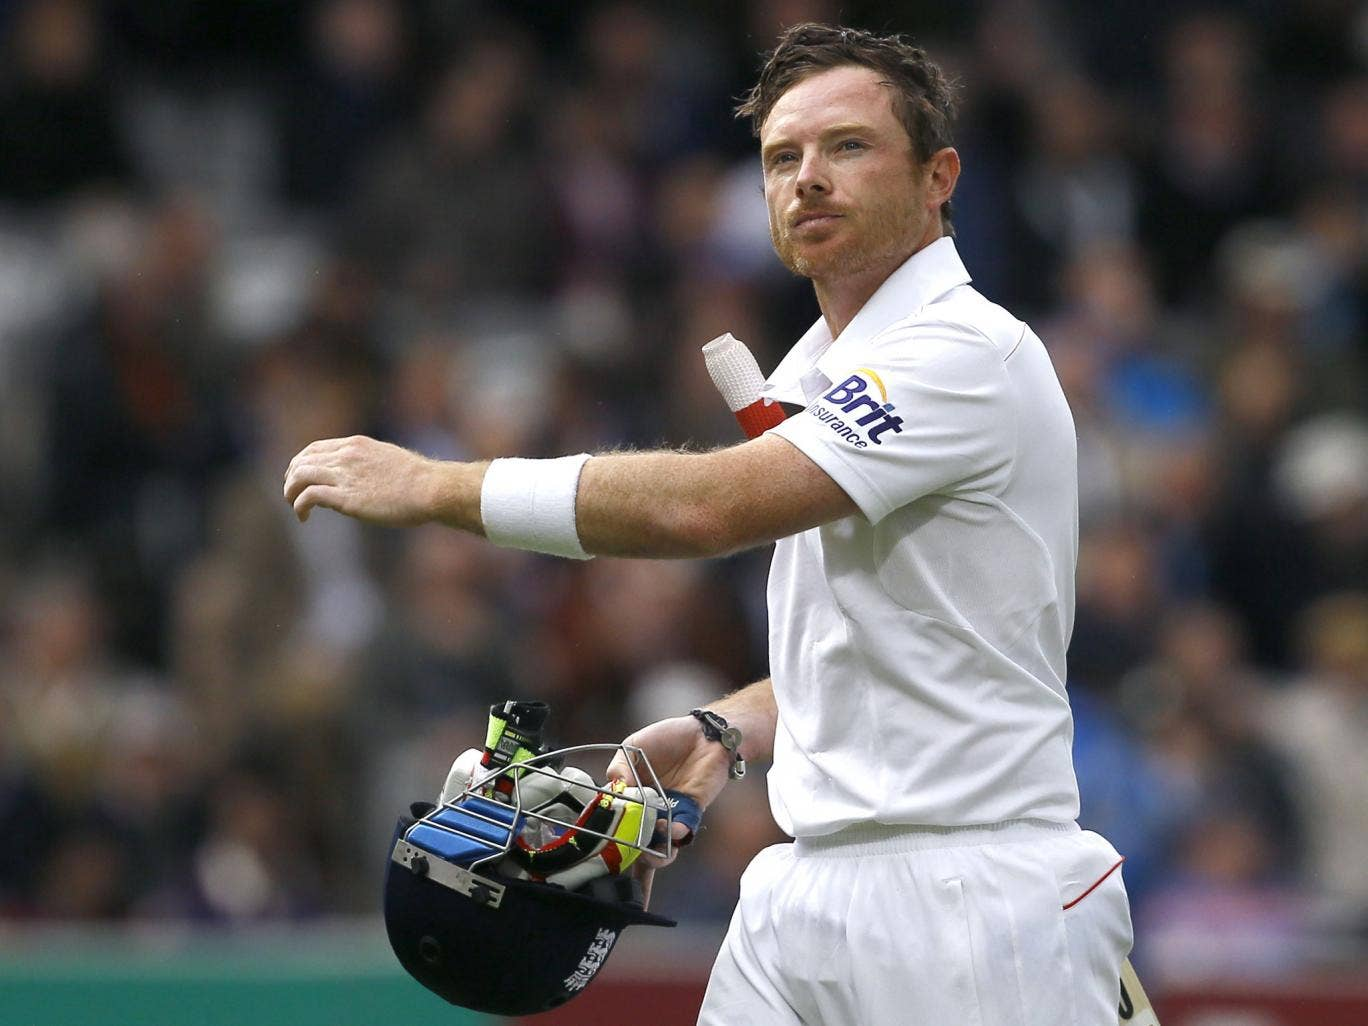 Ian Bell is expected to recover from tonsillitis in time to play for England in the second Test against New Zealand